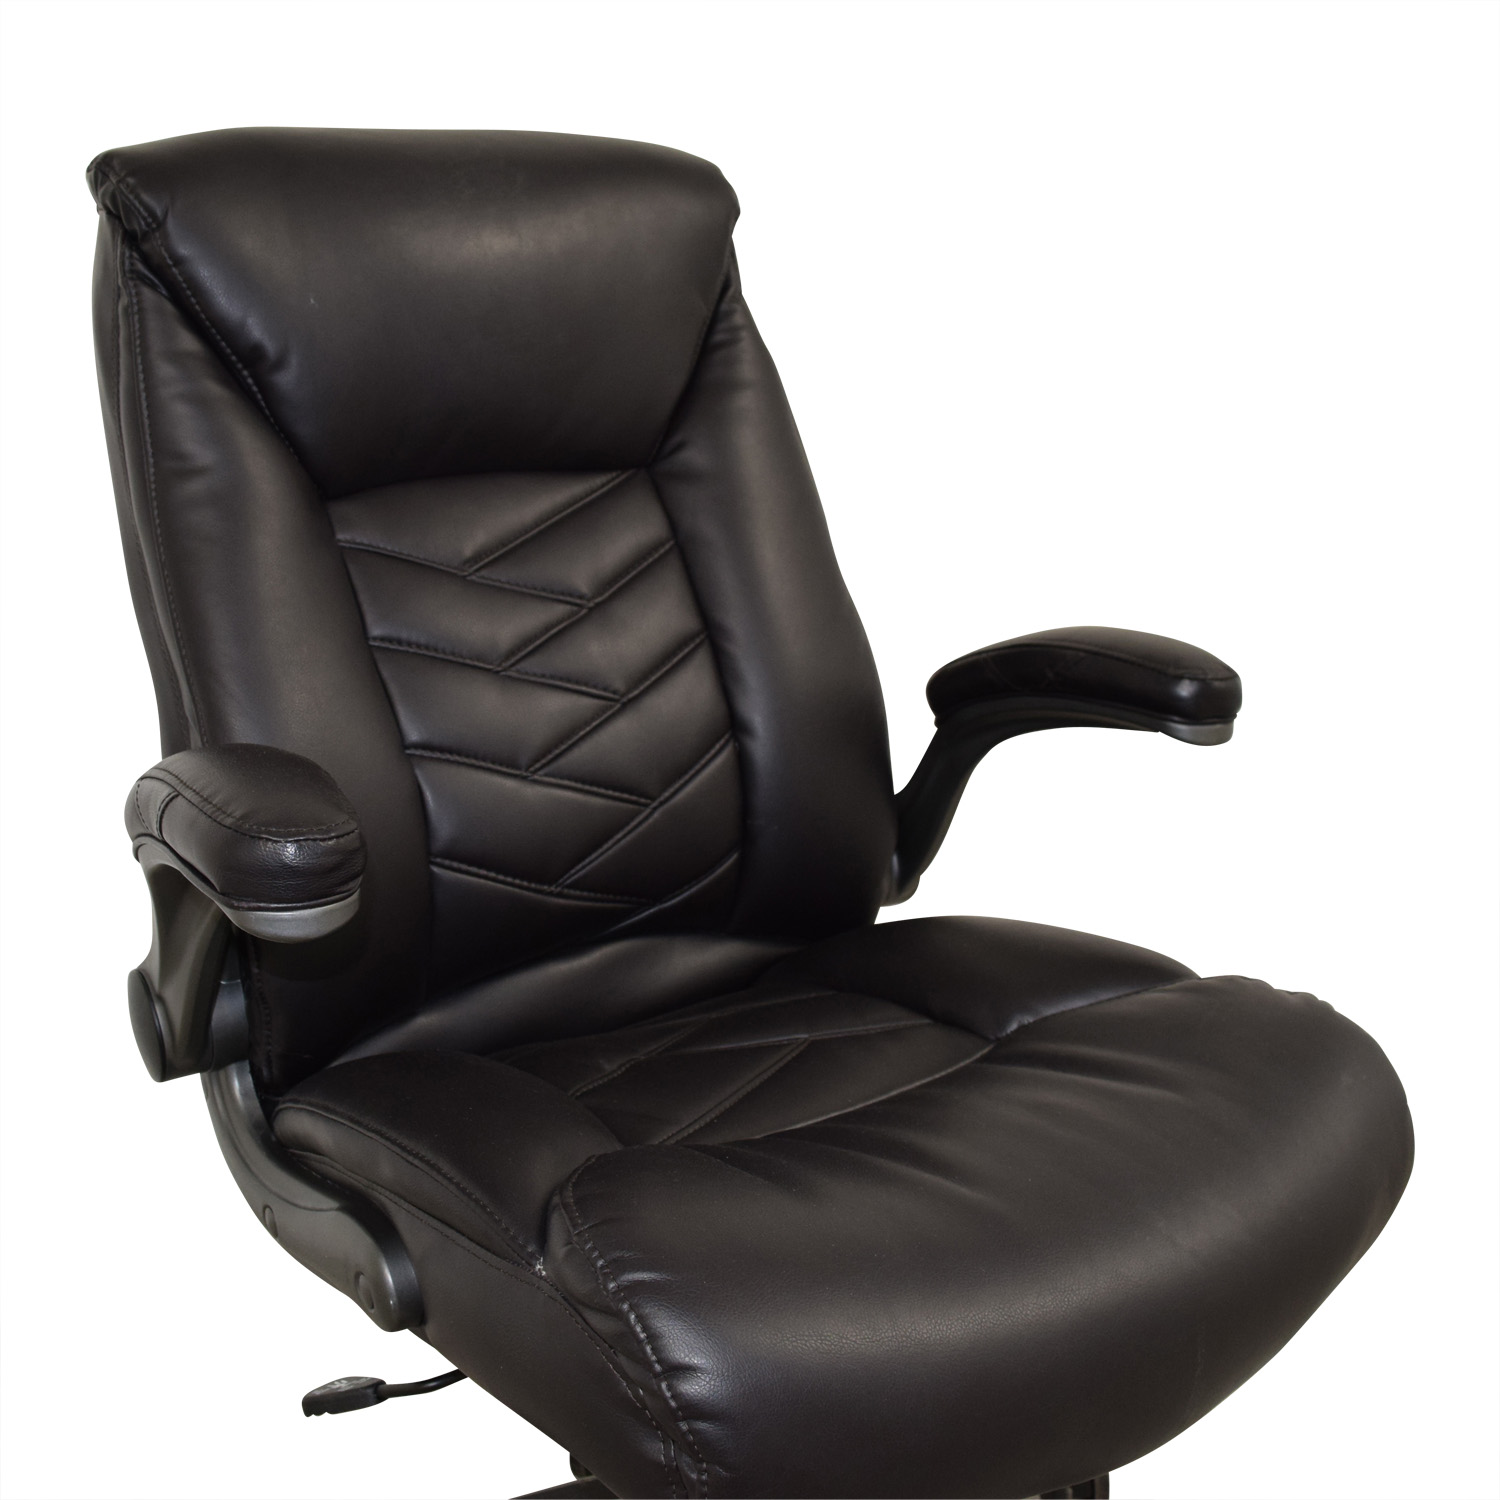 58% OFF - Black Leather Office Chair / Chairs